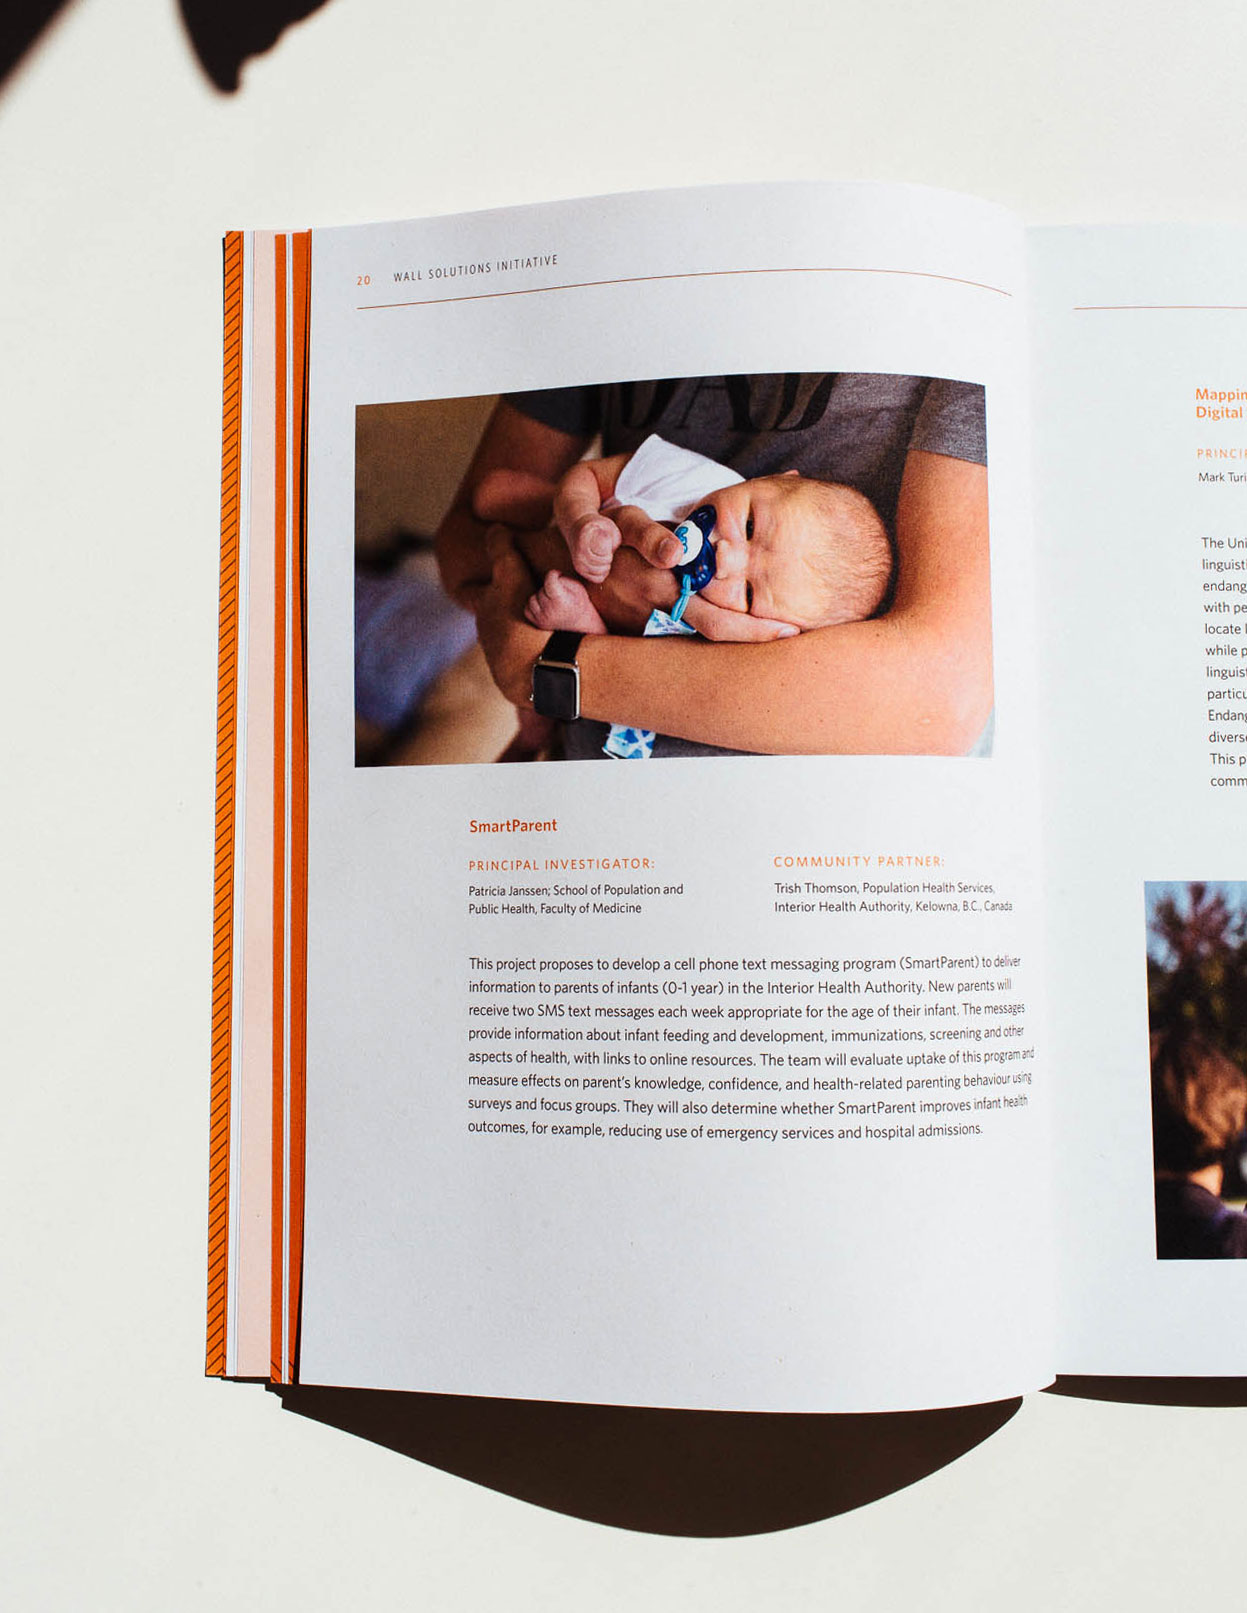 Wall Solutions Initiative Stories, Peter Wall Institute for Advanced Studies printed Annual Report | www.alicia-carvalho.com